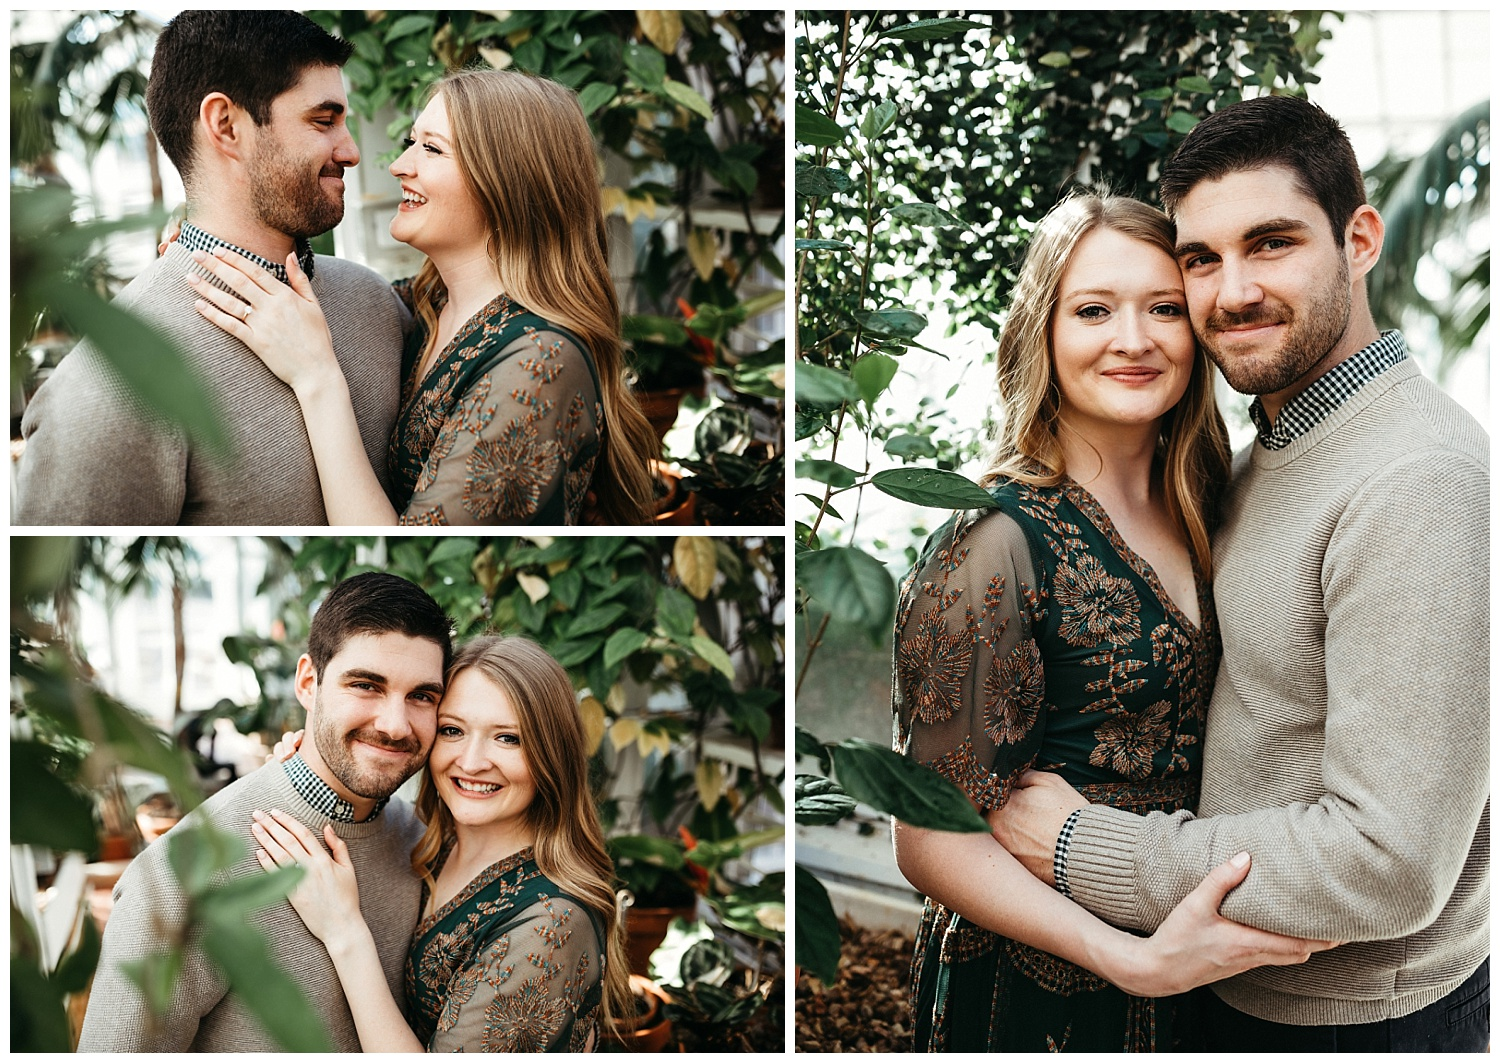 Photos of the happy couple in the Conservatory Greenhouse at Woodward Park in Tulsa, Oklahoma. Love this place, so beautiful.